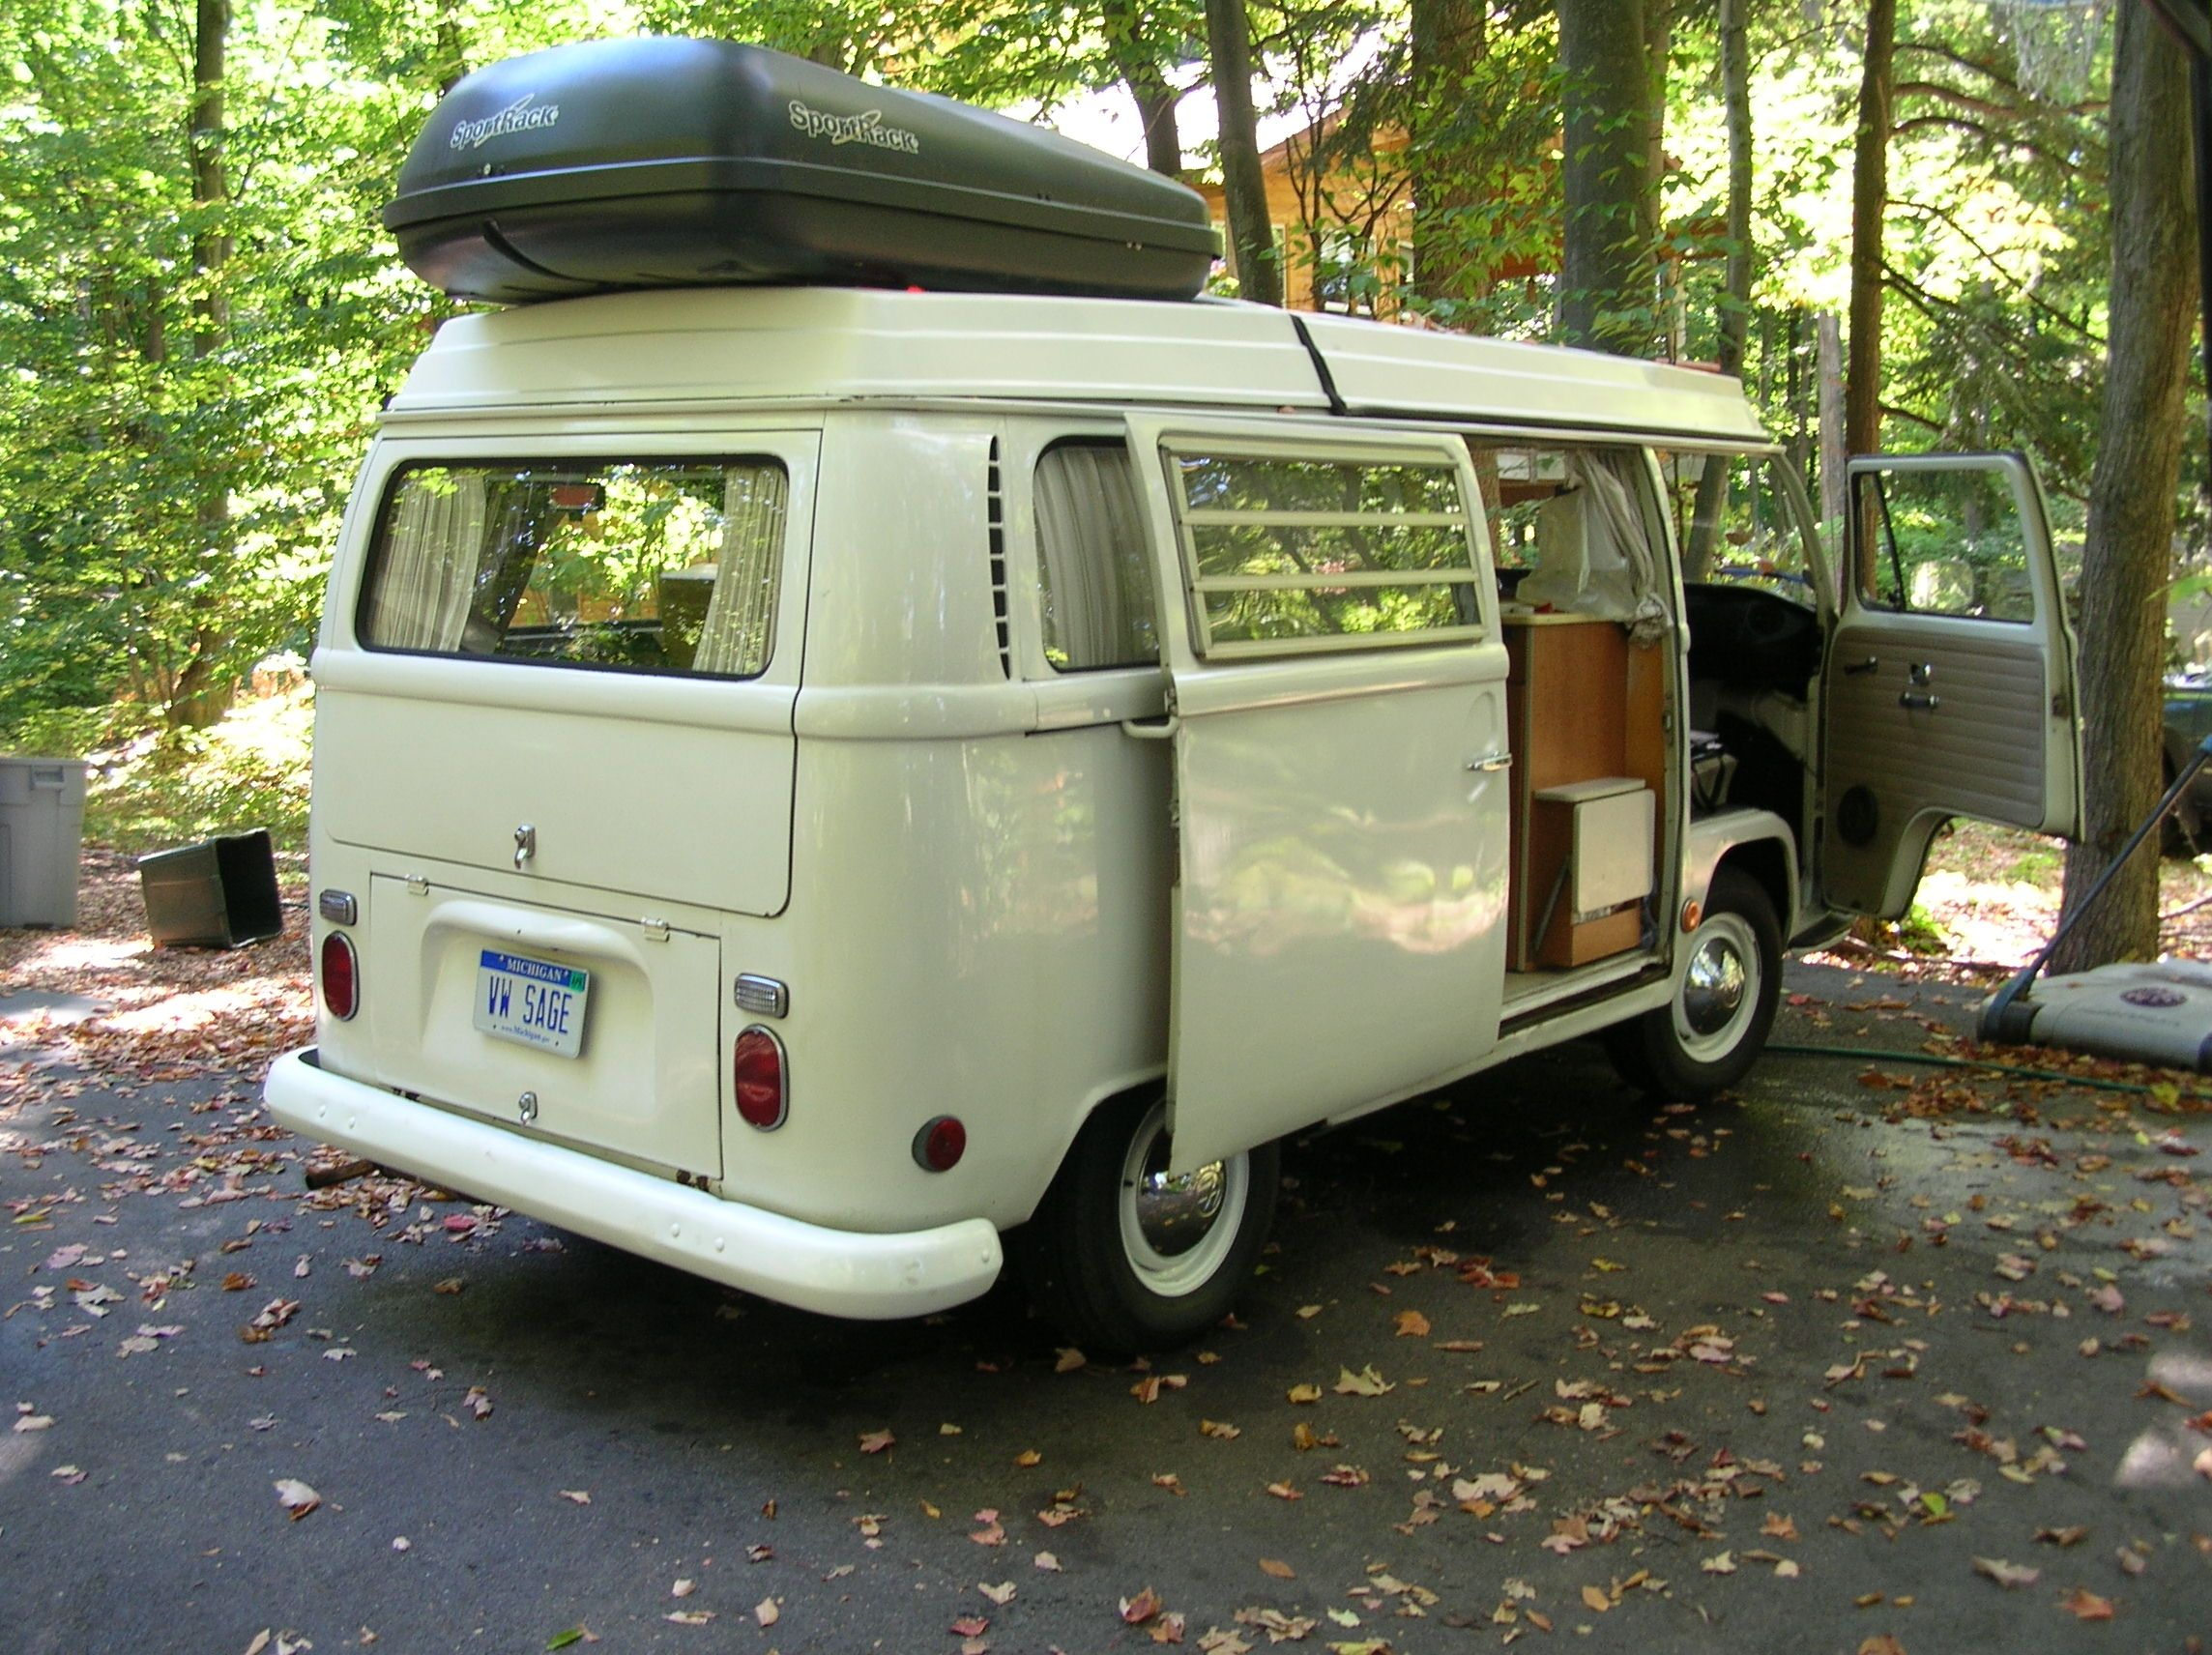 VW Westfalia Type 2 Camper Bus  Renovated 1969, I was the second